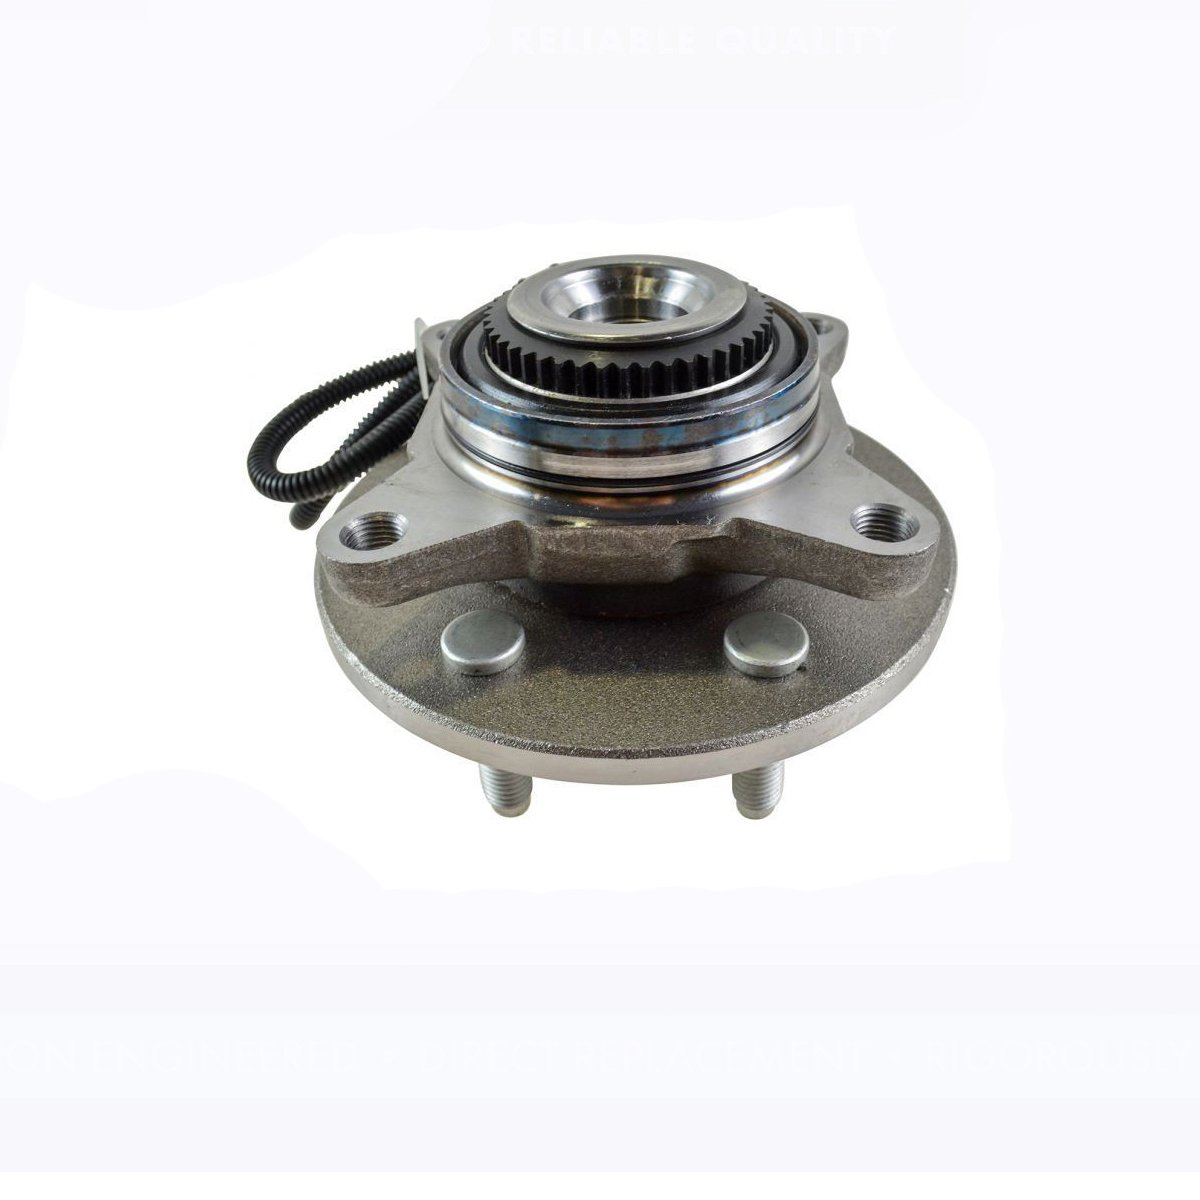 Detroit Axle - Front Wheel Hub and Bearing Assembly Driver Left or Passenger Right Side - 4x4 w/ABS 6 Stud; from 11/29/04-2005-2008 Ford F-150 4x4 - [2006-2008 Lincoln Mark LT]